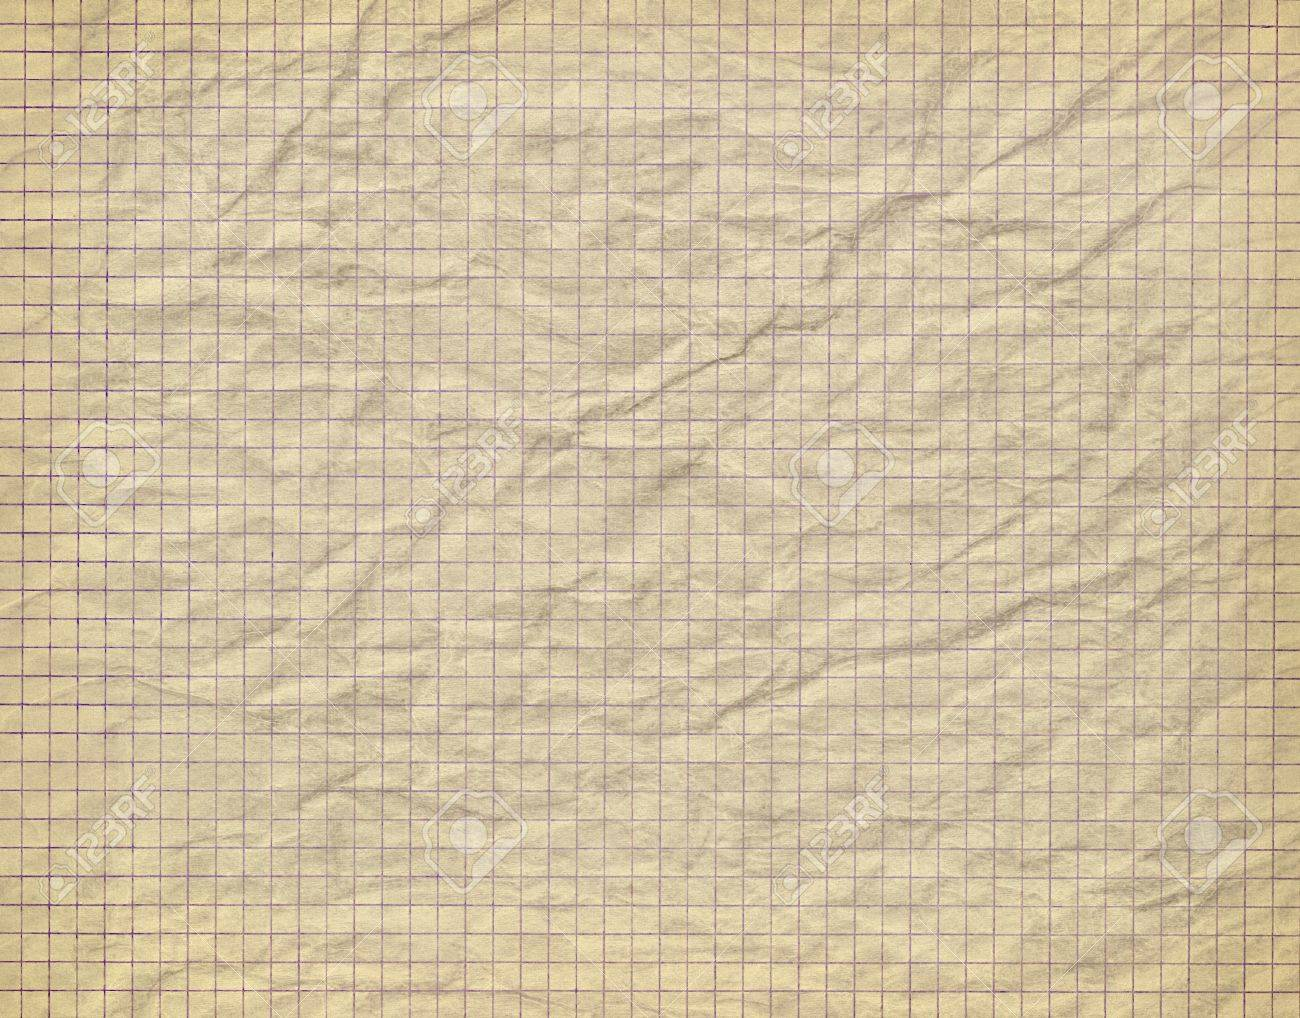 Old crumpled checkered paper background - 14557294